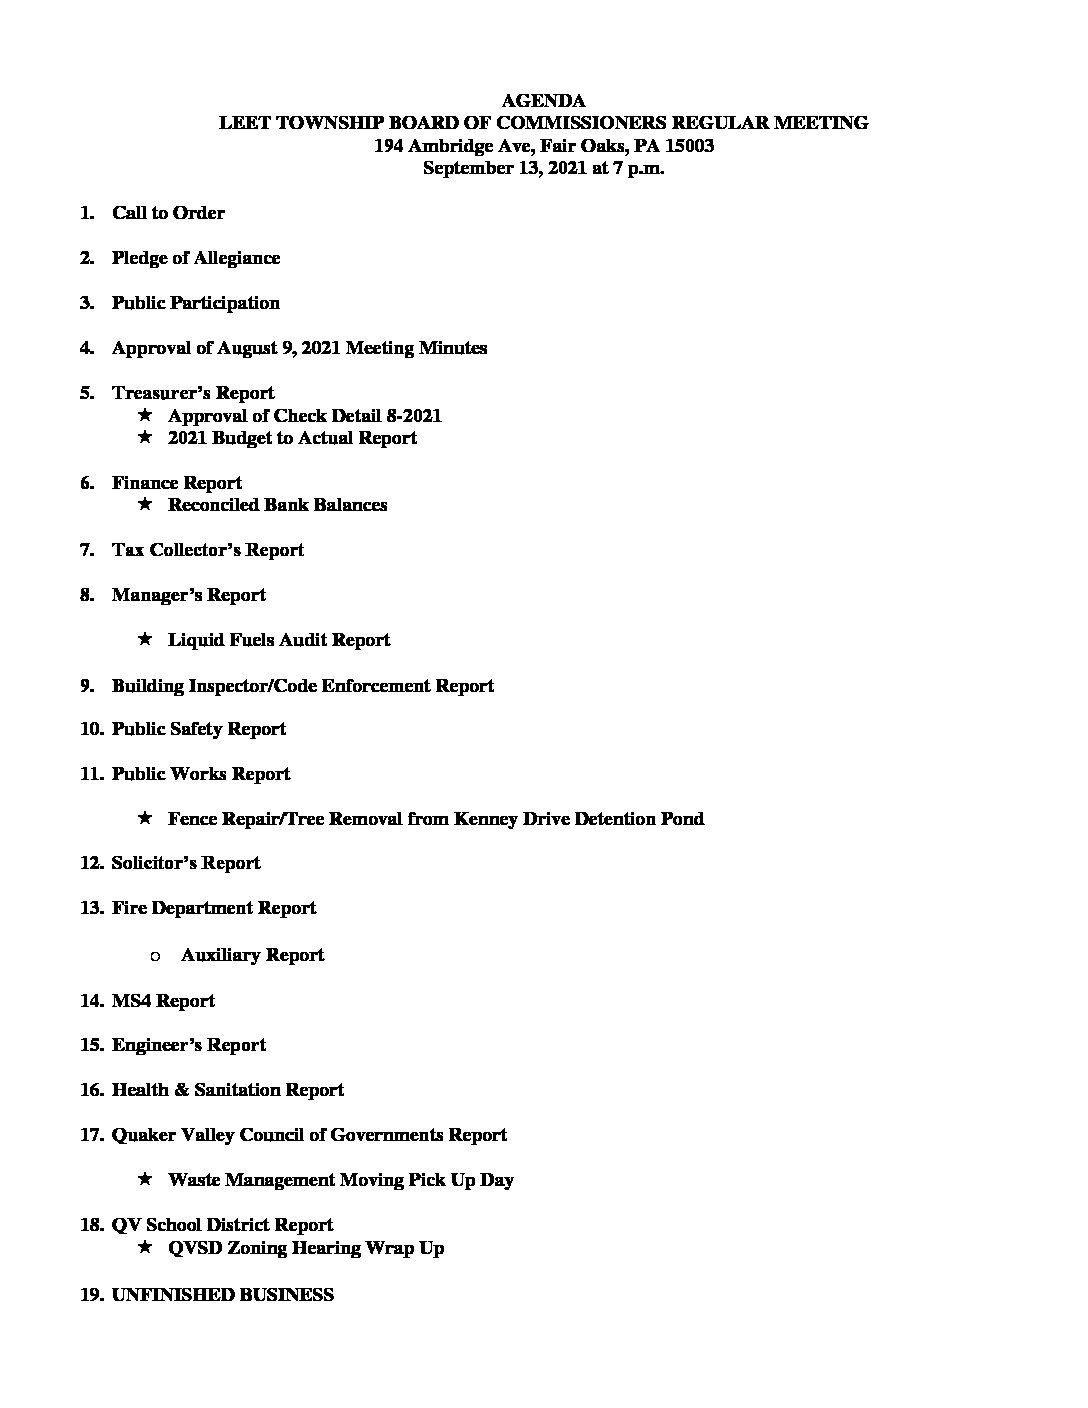 AGENDA September 13, 2021 Board of Commissioners Meeting